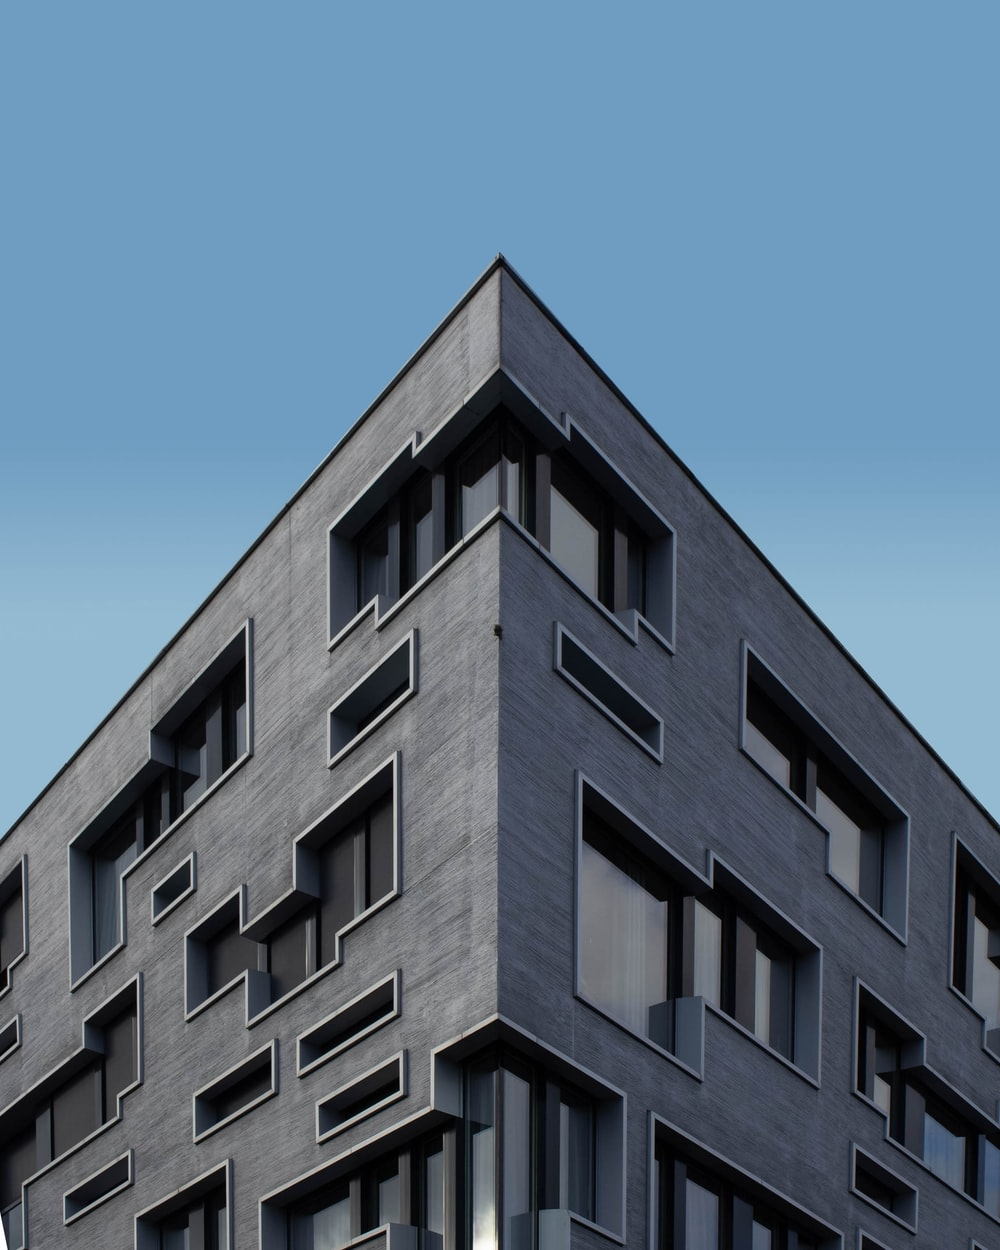 low angle photo of concrete building